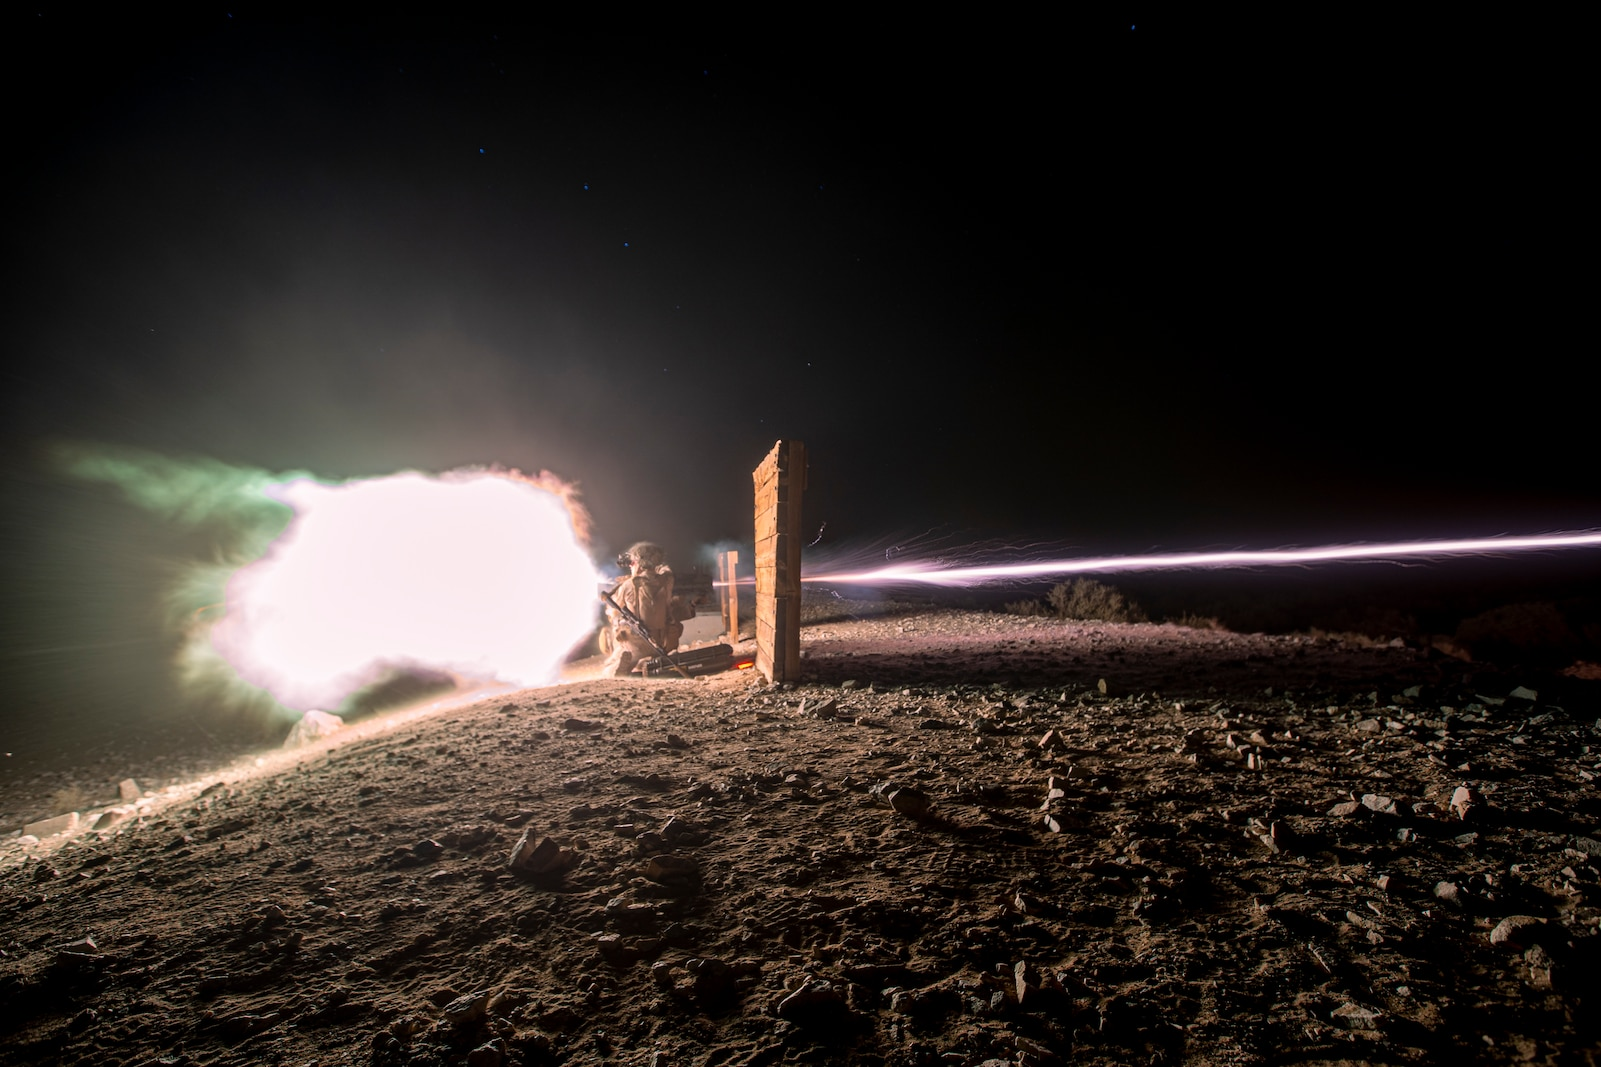 U.S. Marines with 1st Battalion, 3d Marines, employ a M3E1 Multi-purpose Anti-armor Anti-personnel Weapon System during a live-fire range as part of Service Level Training Exercise 1-22 at Marine Corps Air Ground Combat Center Twentynine Palms, California, Sept. 24, 2021. This training provides effective and intense repetitions in an expeditionary environment to ensure 3d Marines remains lethal and ready to fight now. (U.S. Marine Corps photo by Cpl. Juan Carpanzano)